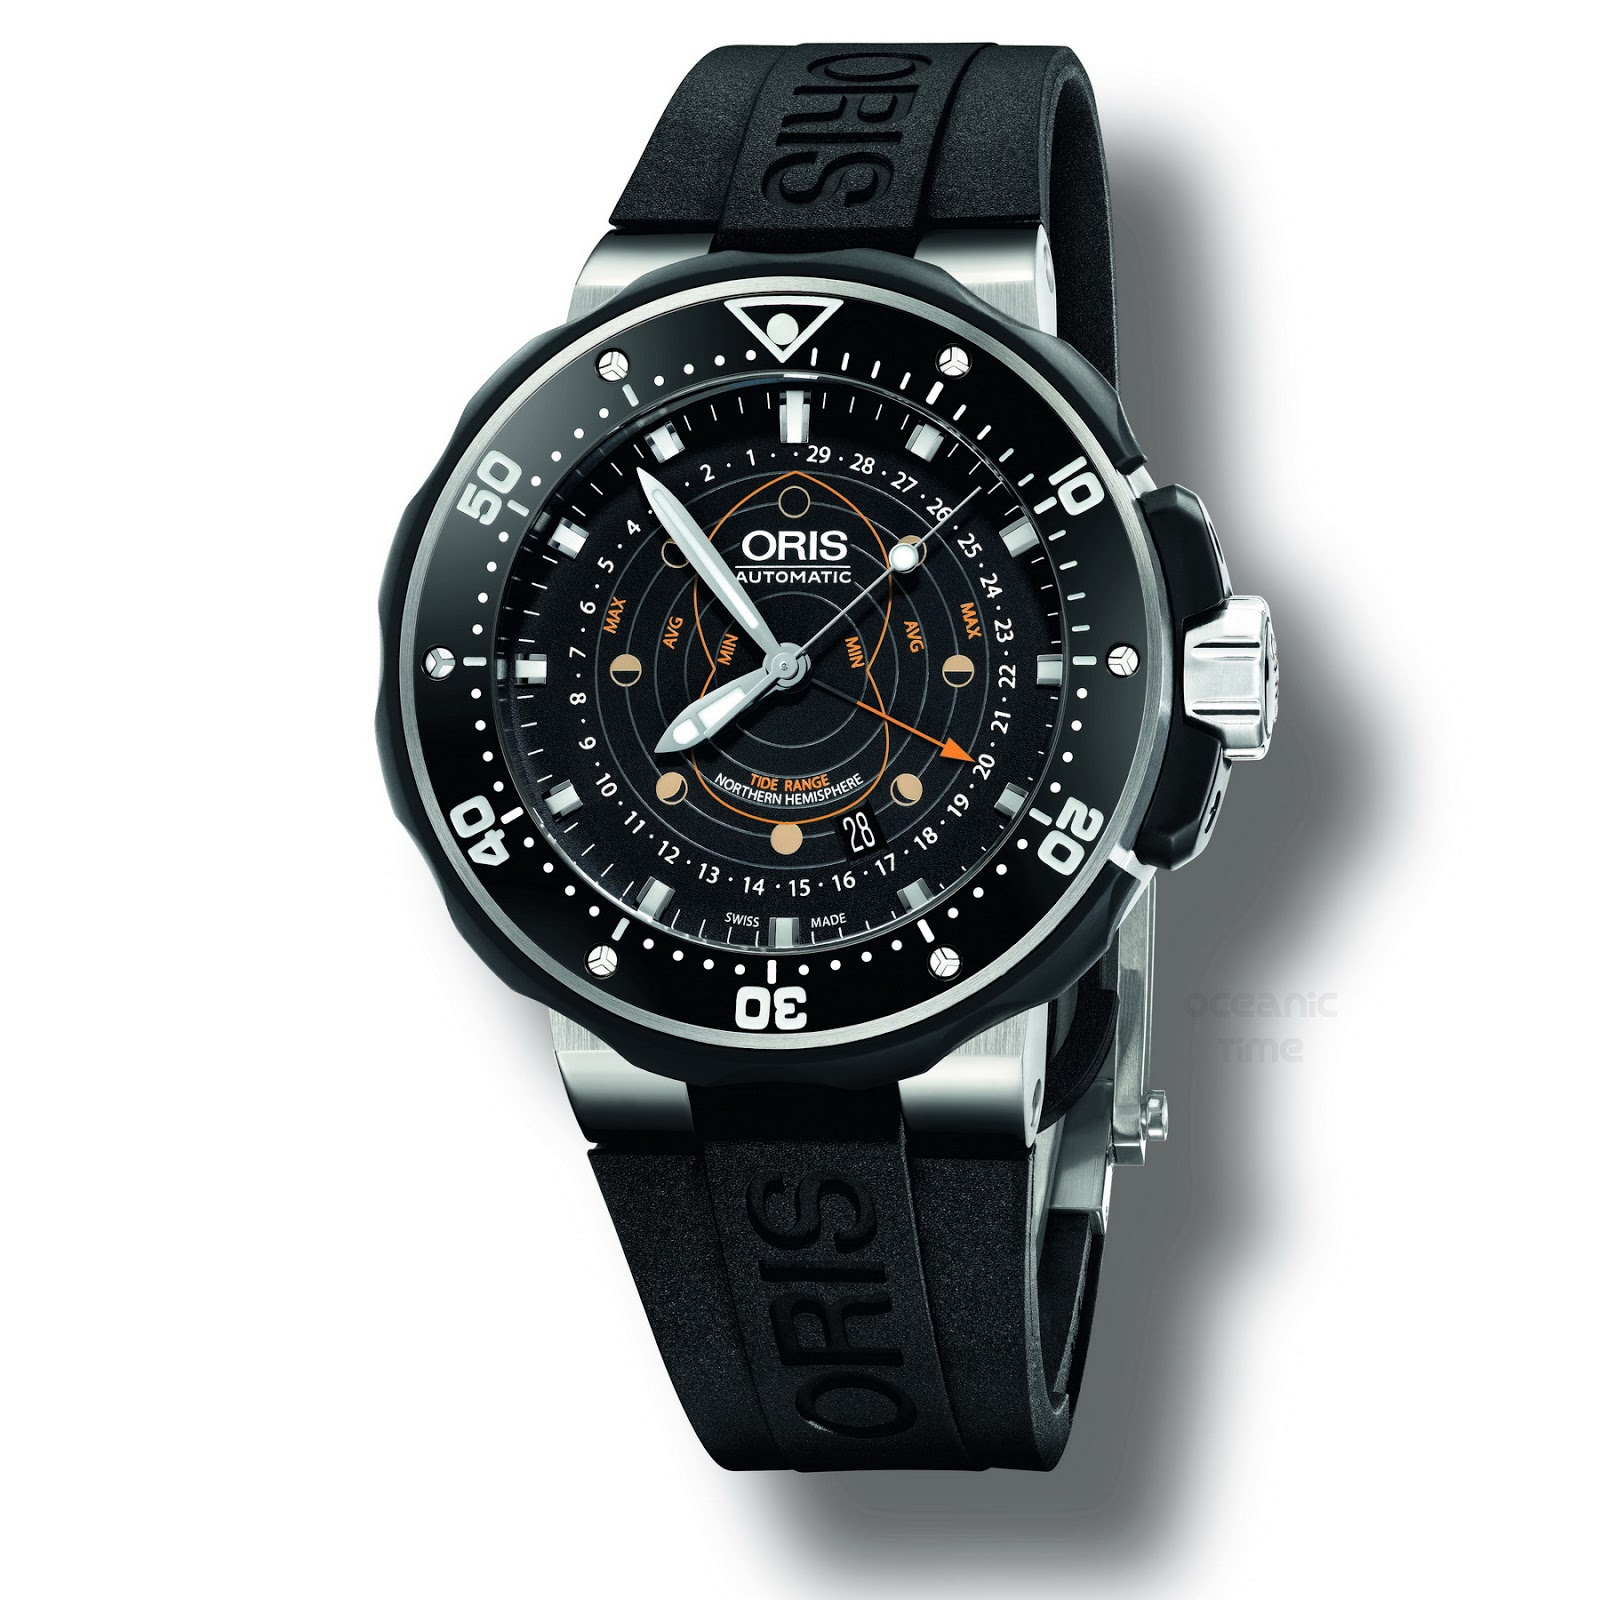 Oris-ProDiver-Pointer-moon.jpg